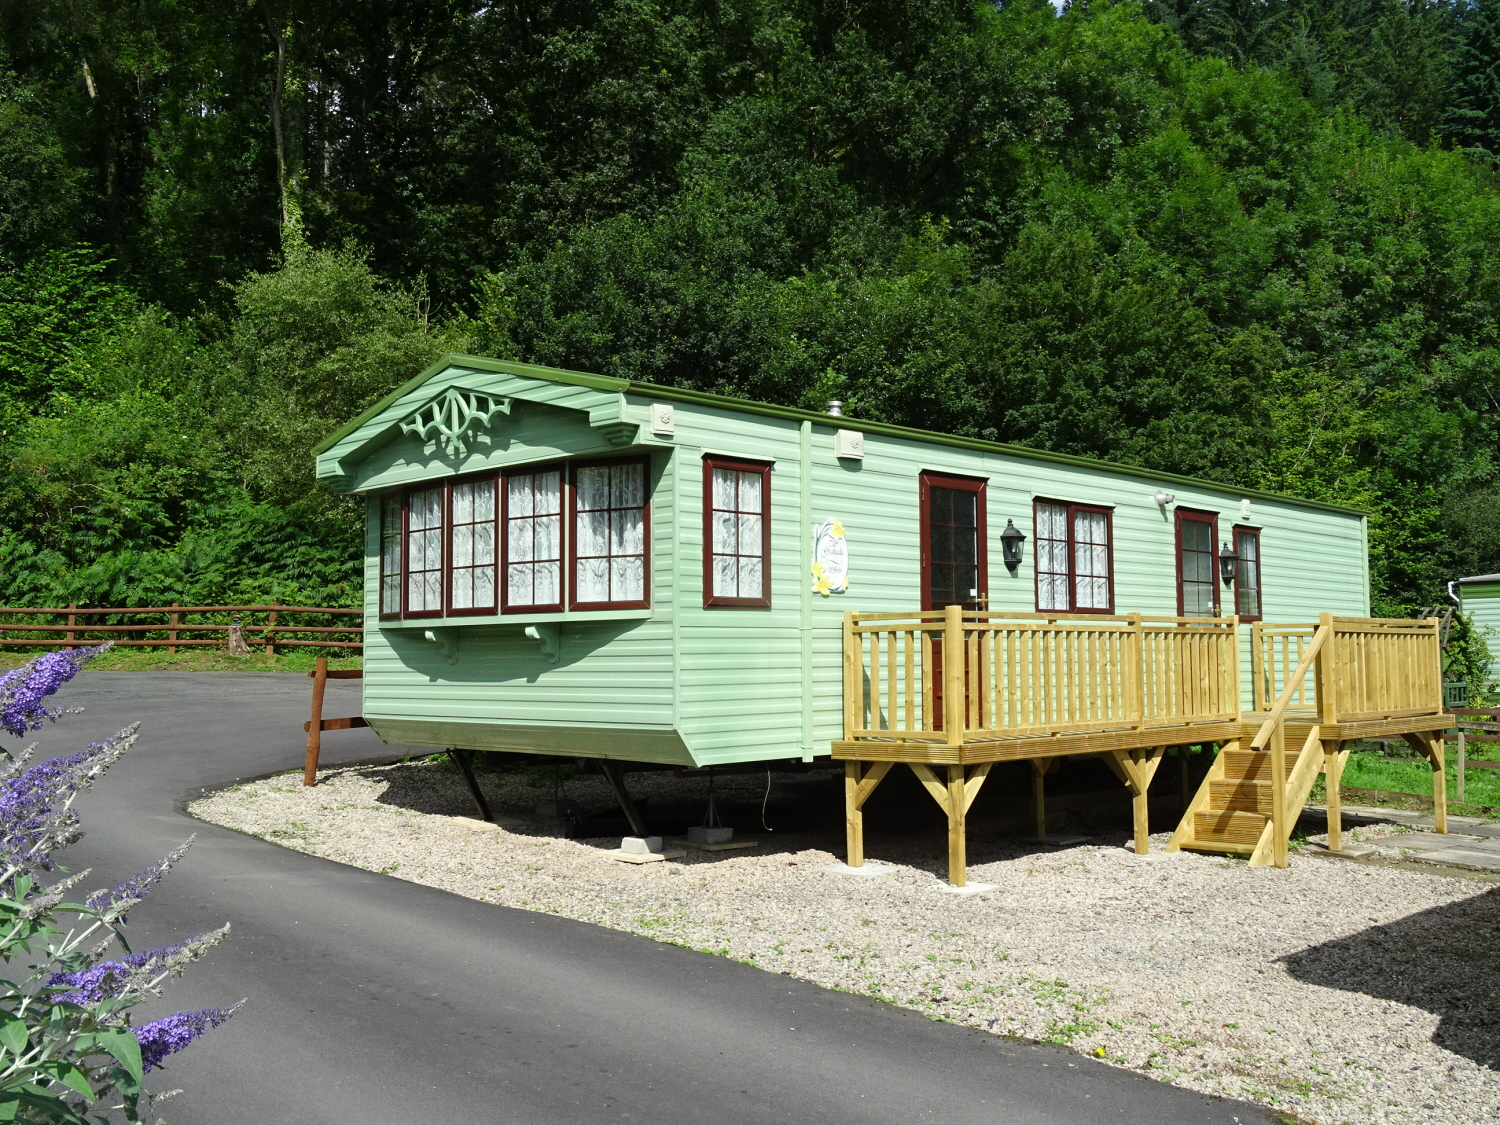 Treat yourself to a holiday home amidst the beautiful Powys hillsides and forests